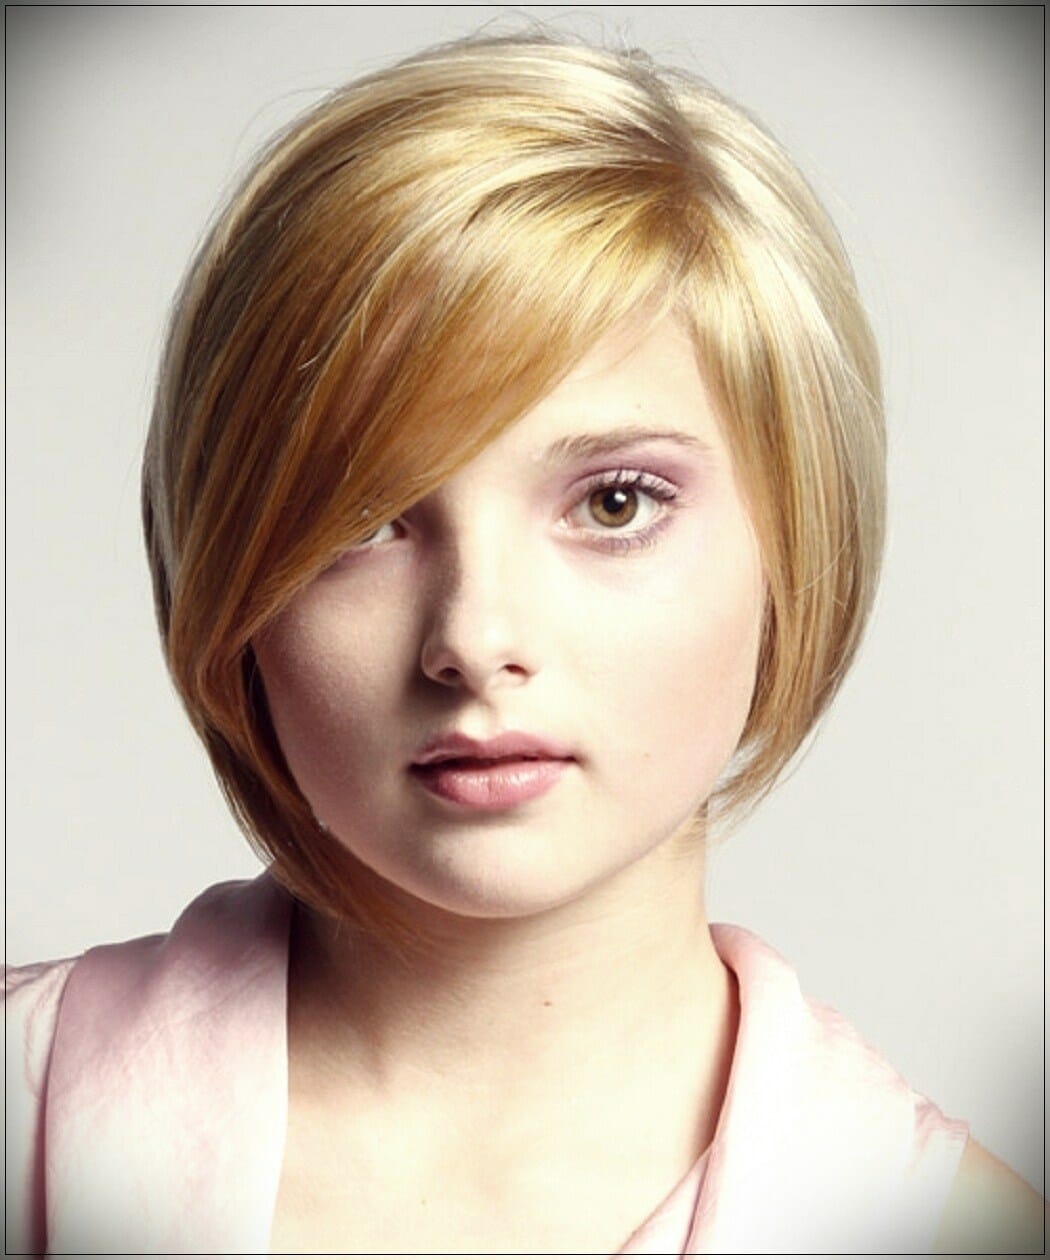 short hairstyles for round faces 5 - Correct hairstyles for your face type